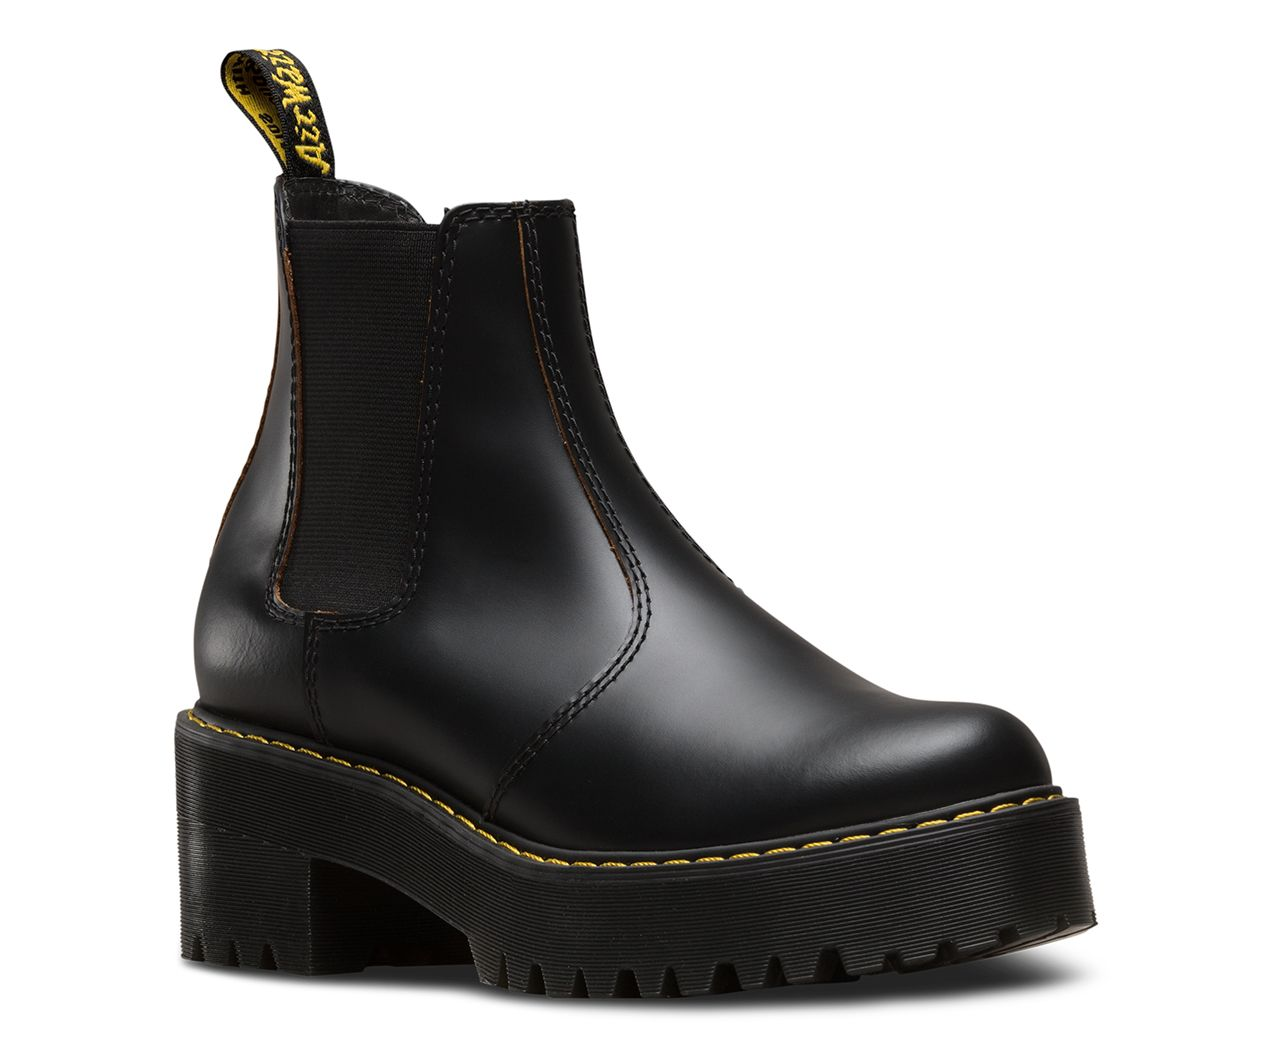 fee61d5bd3d The Rometty is a women's Chelsea boot that strikes the perfect ...